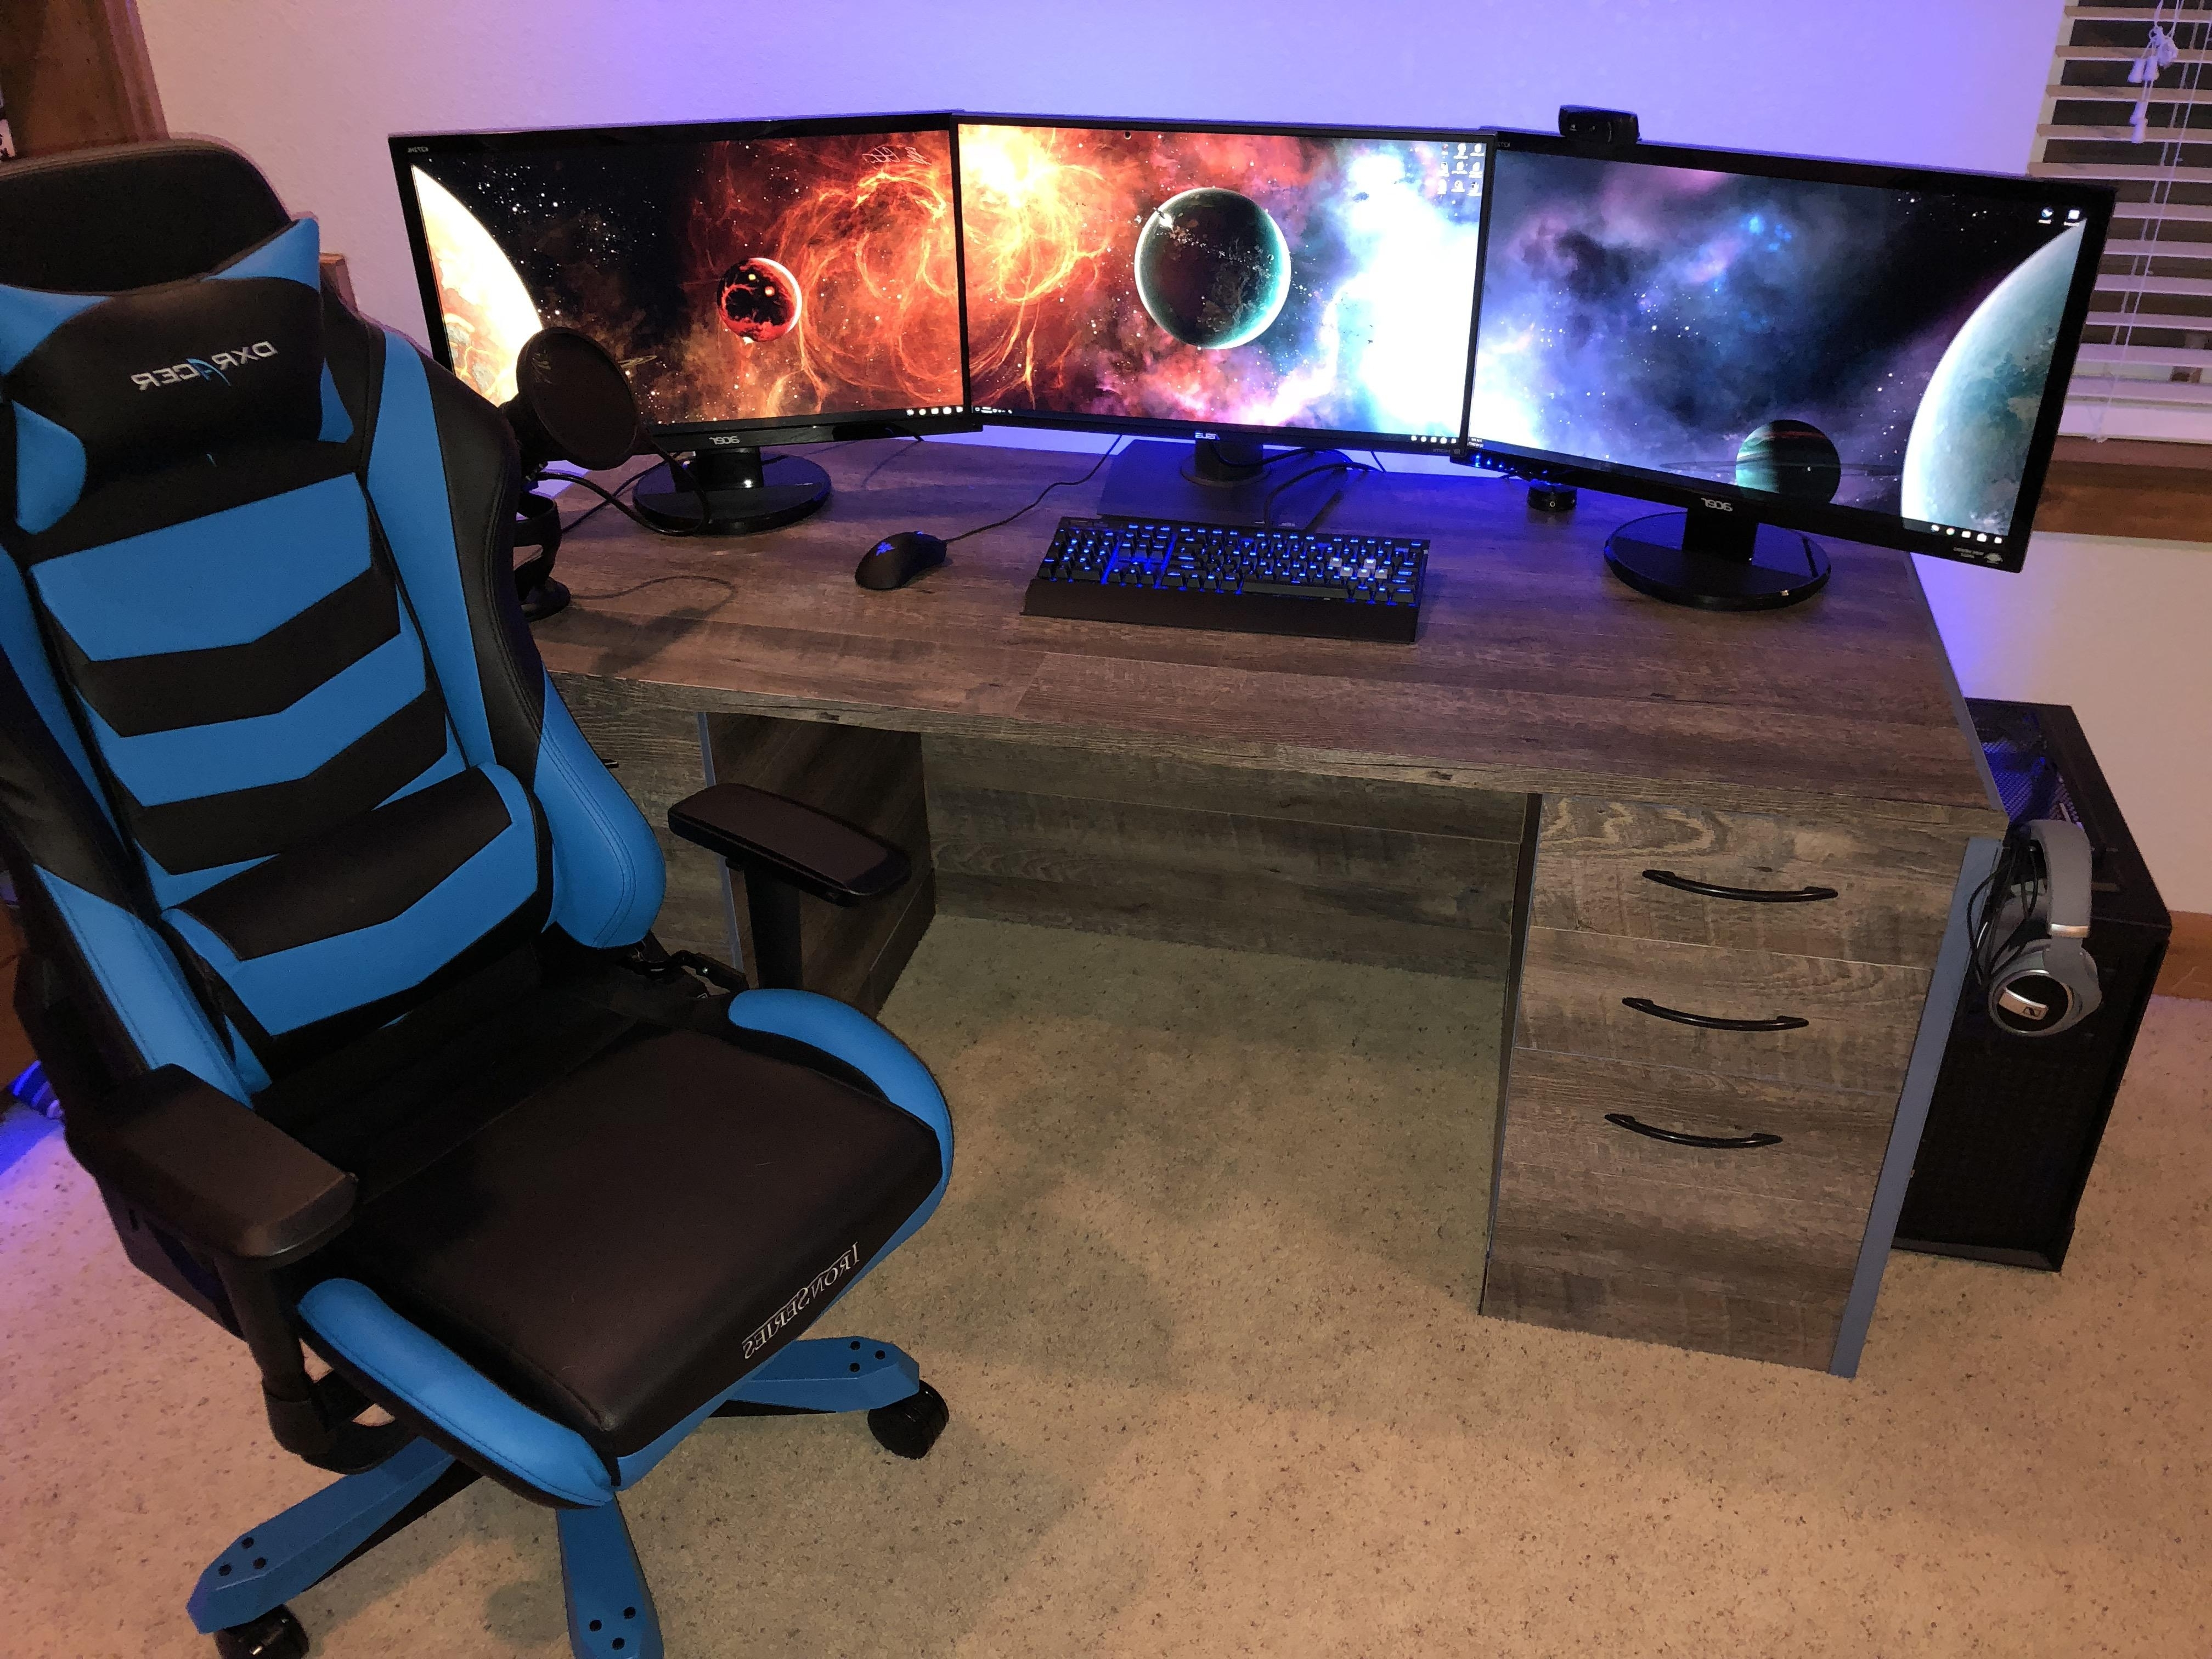 New Personalized Desk To Go With My 3 Monitor Blue Accent Setup Throughout Favorite Computer Desks For 3 Monitors (View 17 of 20)